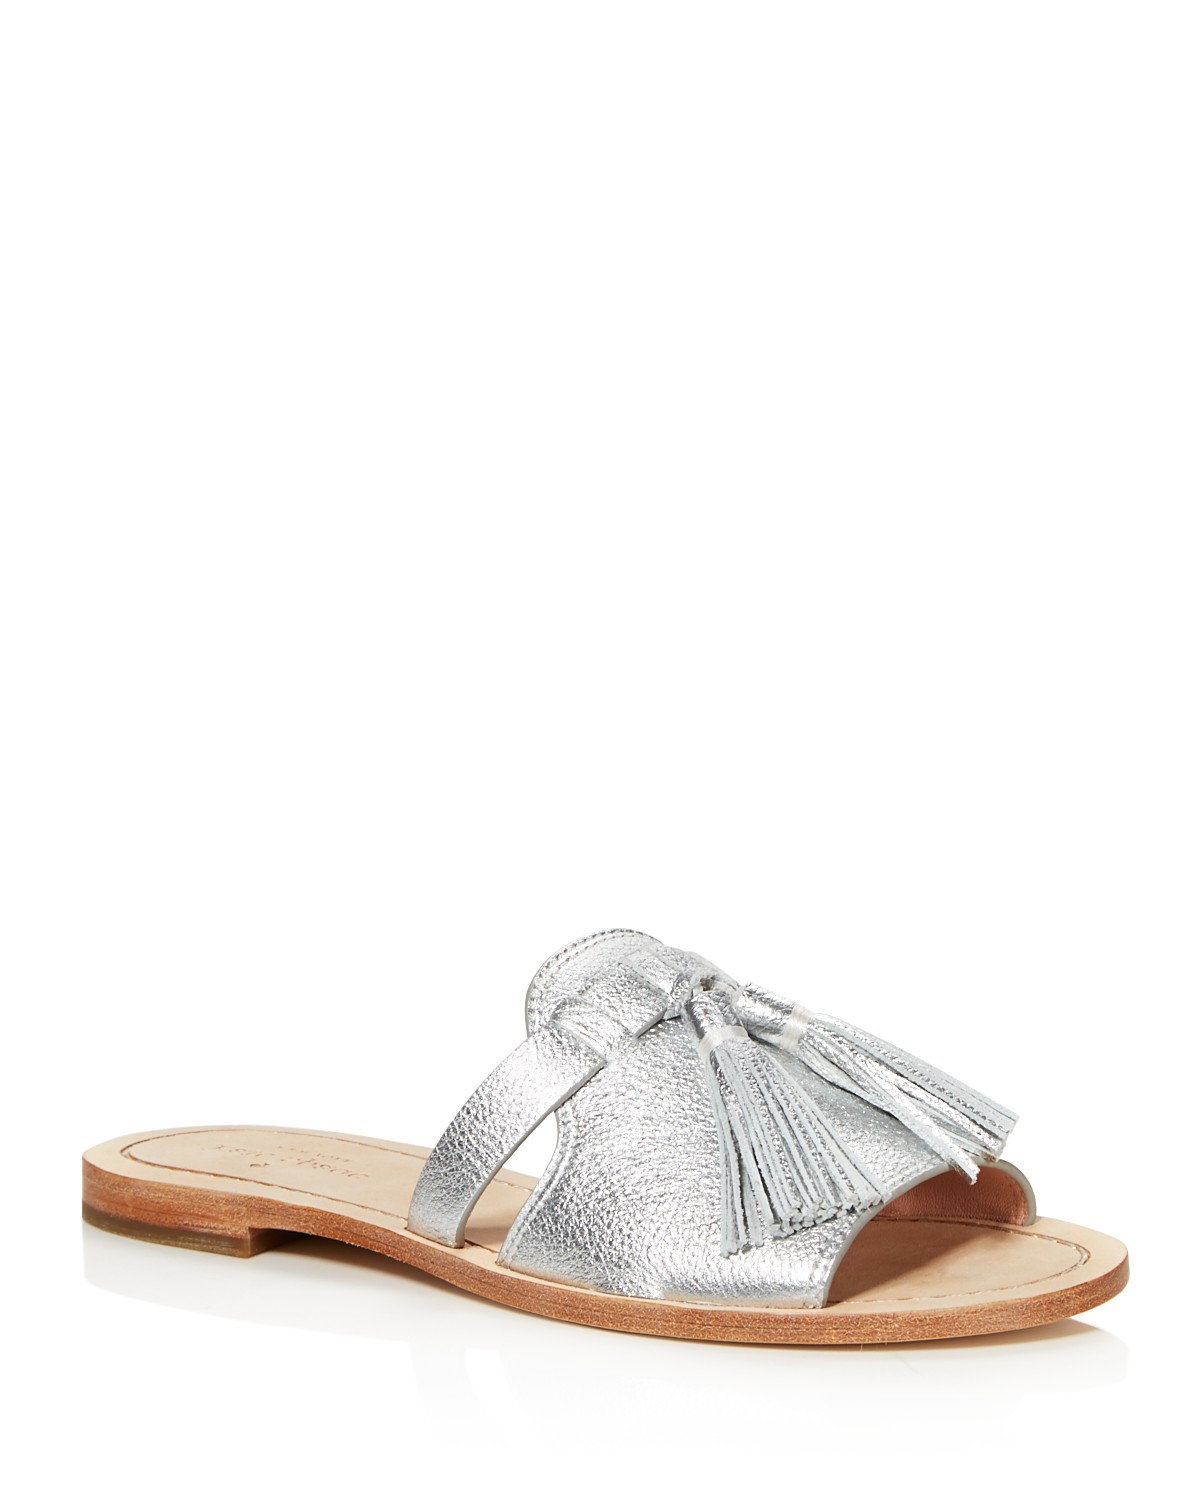 Kate Spade New York Women's Coby Metallic Leather Tassel Slide Sandals rnJPMd